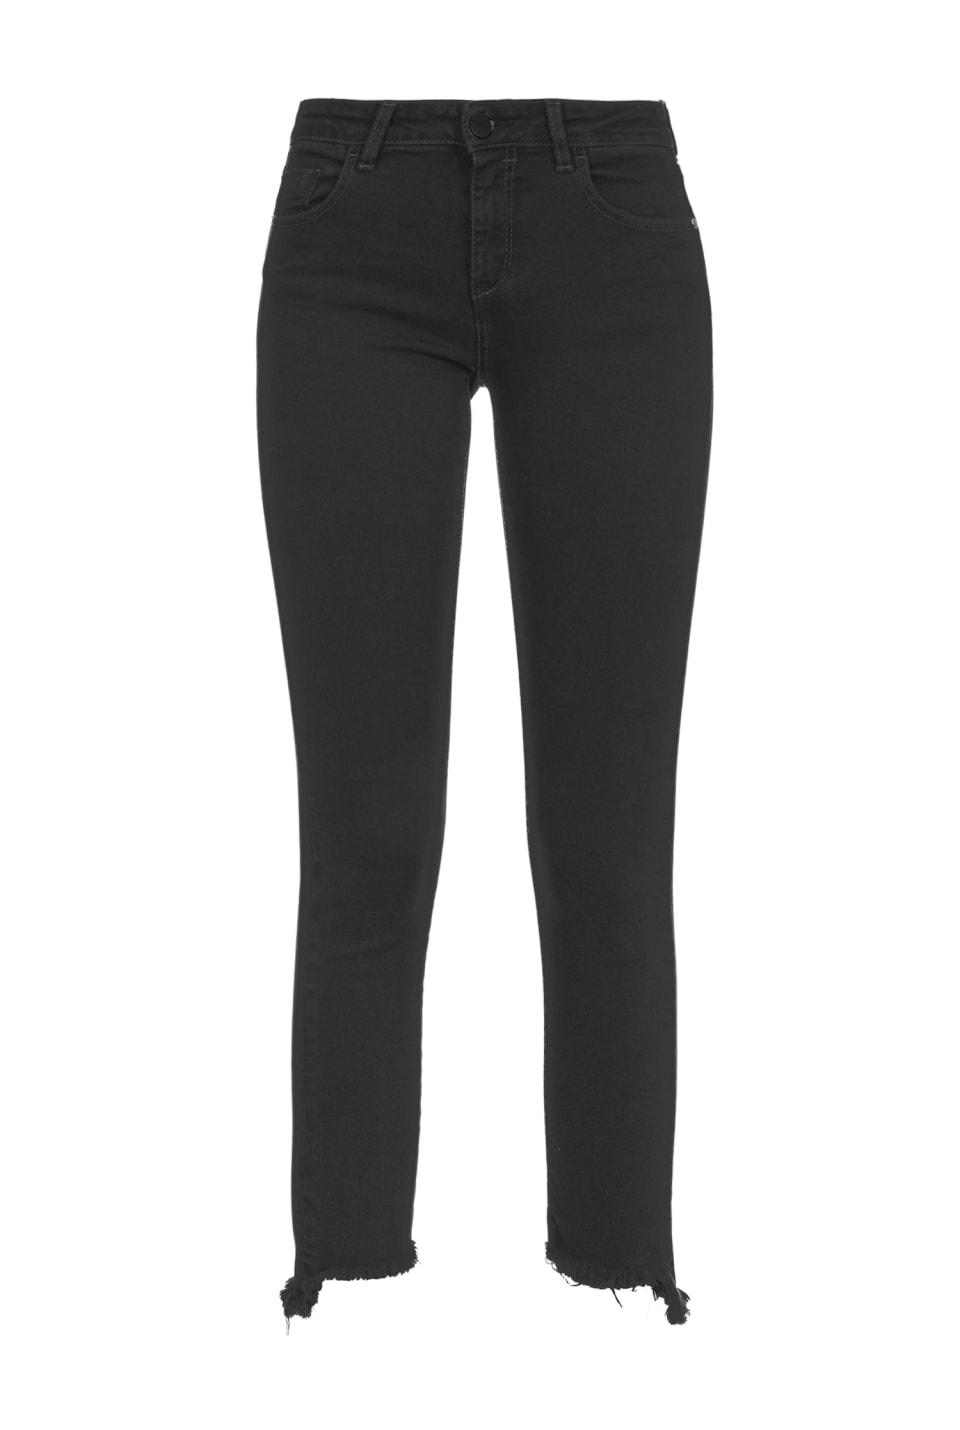 Skinny jeans in black reform denim